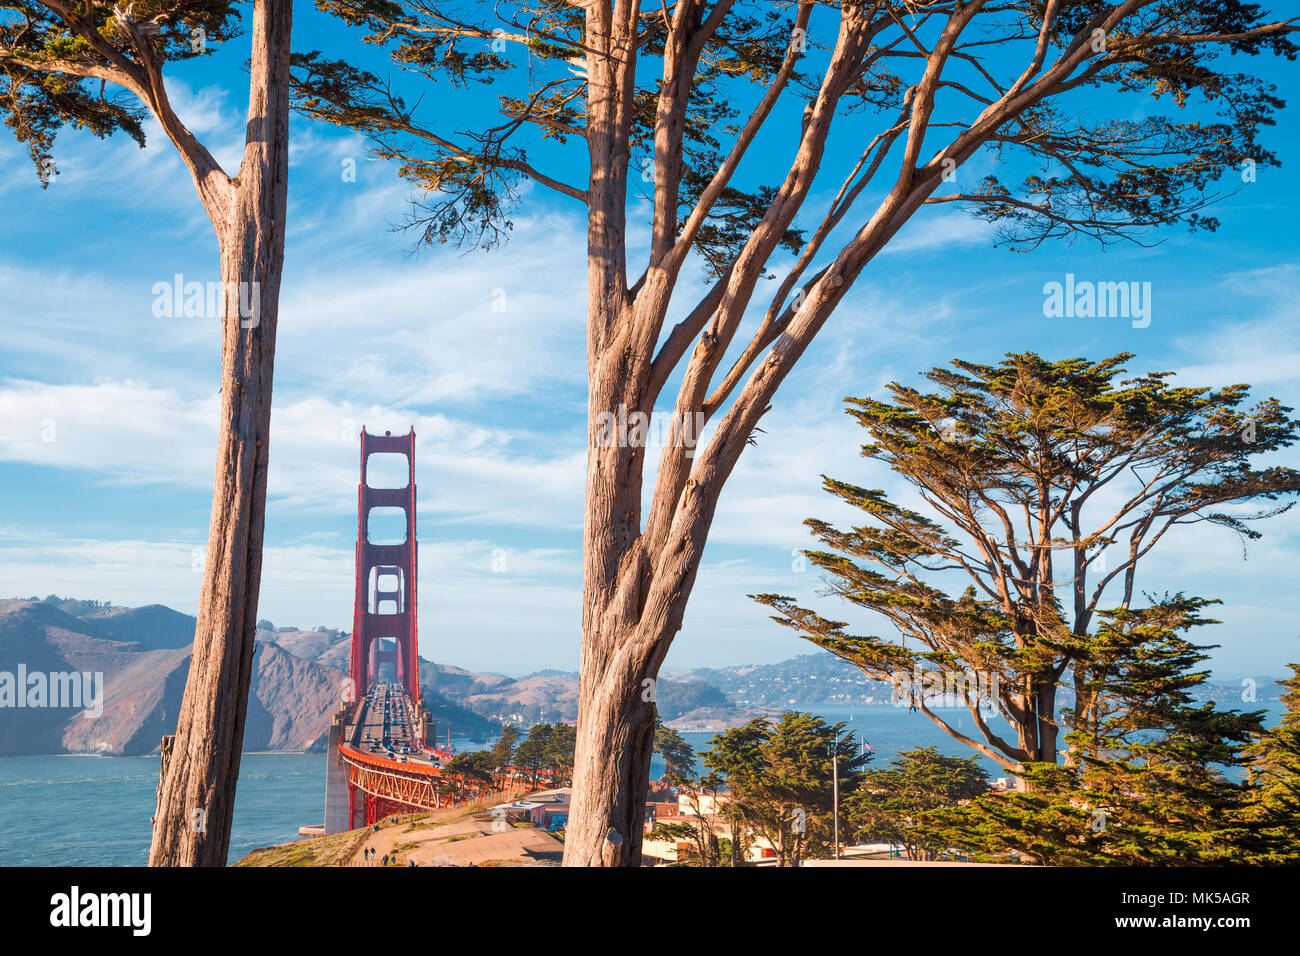 Famous Golden Gate Bridge framed by old cypress trees at Presidio Park on a beautiful sunny day with blue sky and clouds, San Francisco, California - Stock Image